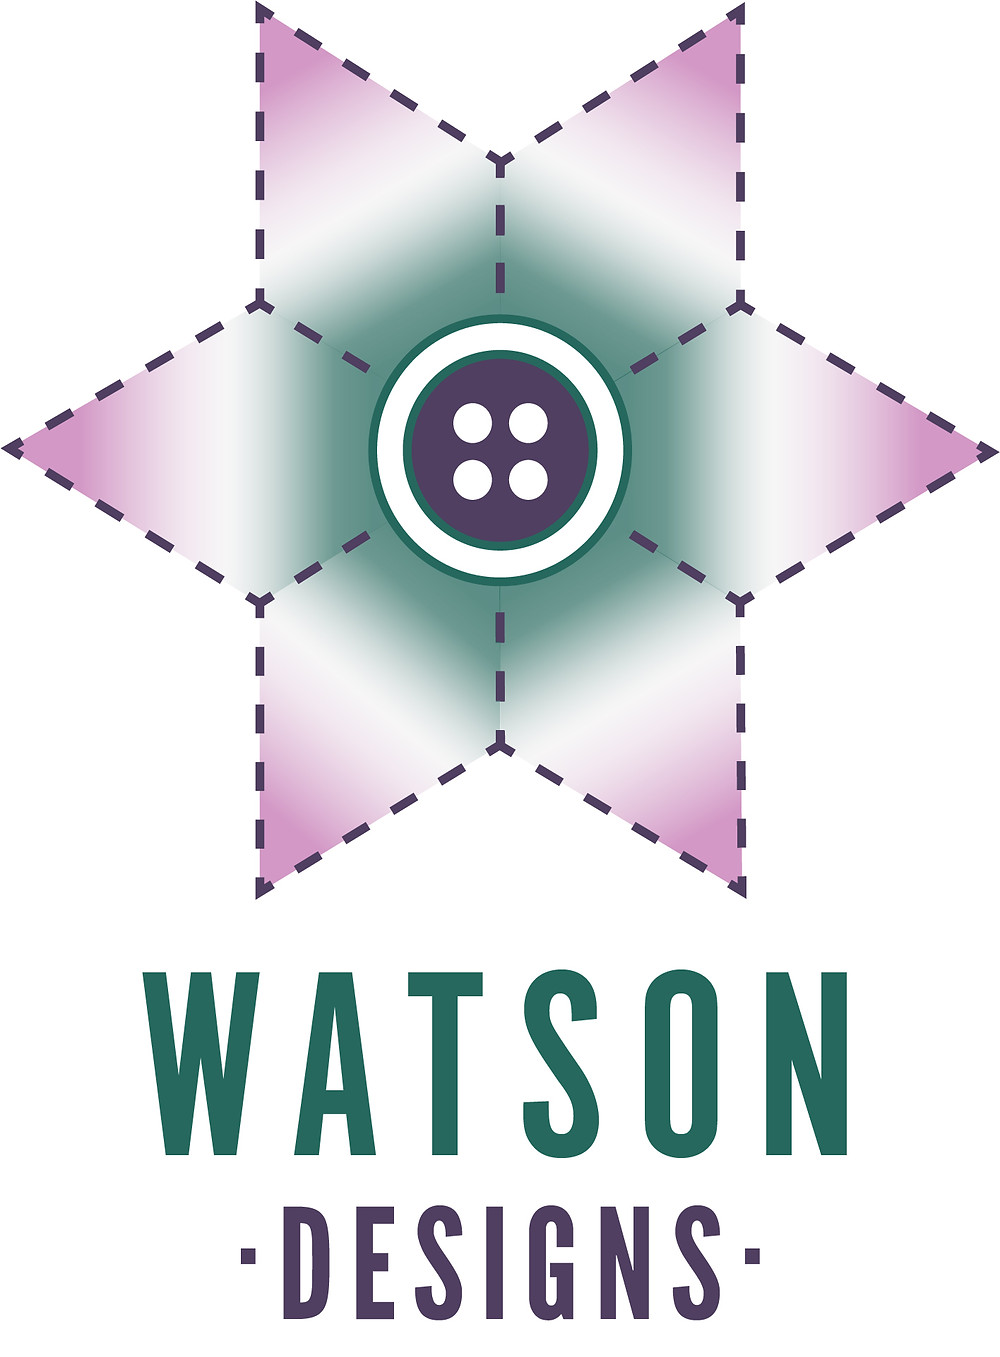 Stitched flower shaped logo with a button for the centre, accompanied with the text 'Watson Designs'